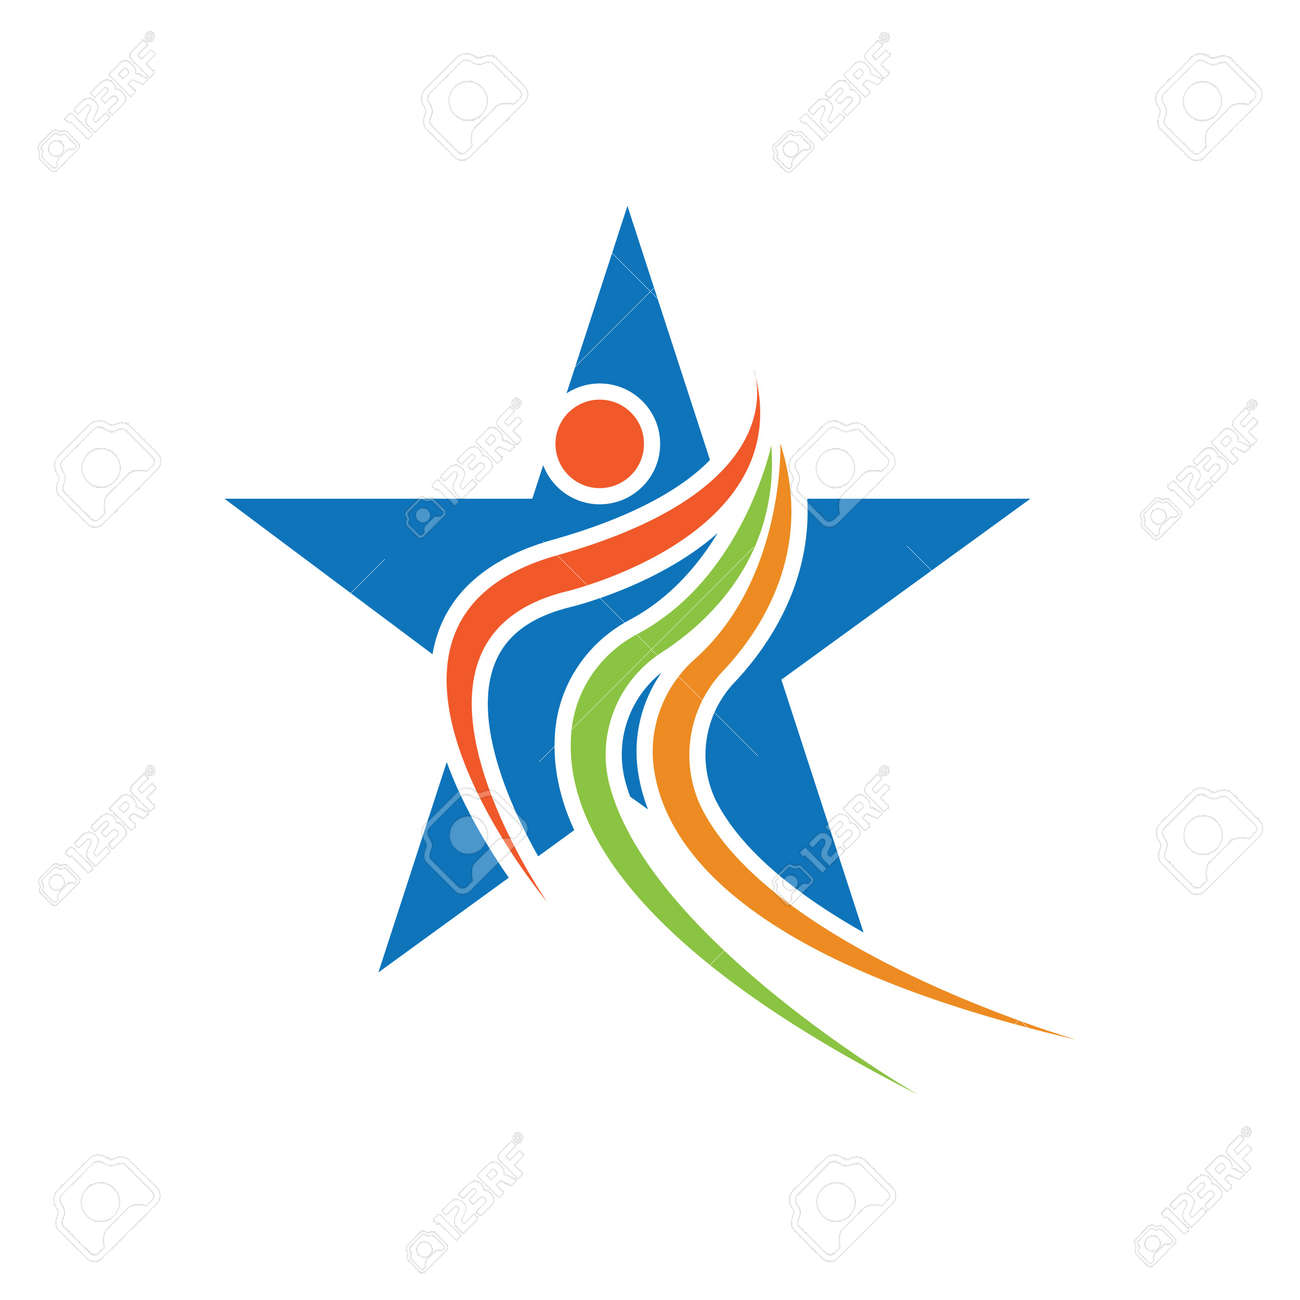 Star success people care logo and symbols template - 155592504